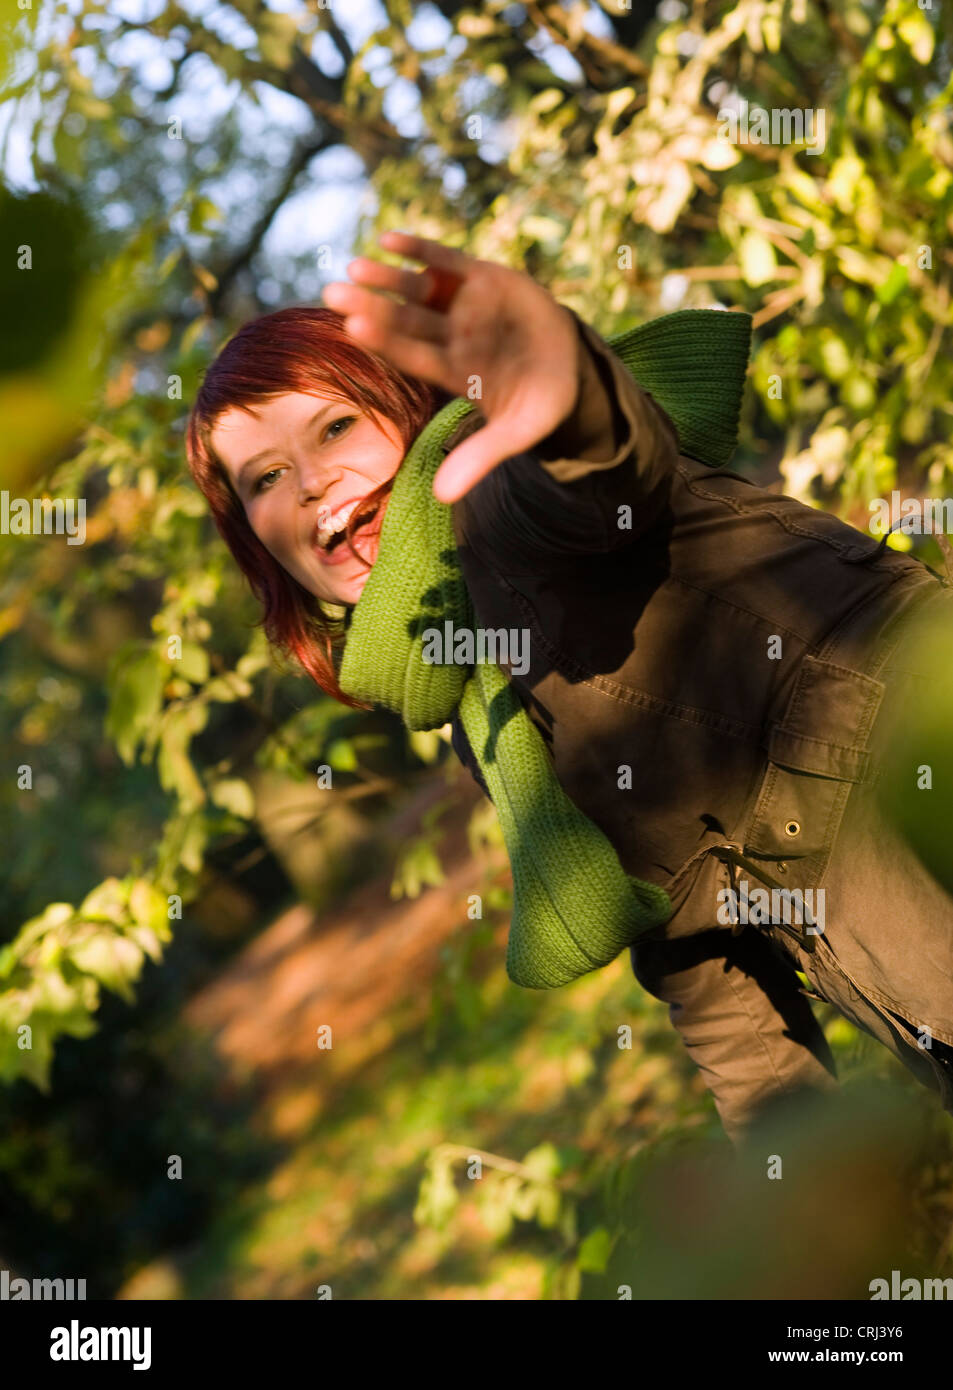 lucky, young woman in autumn - Stock Image